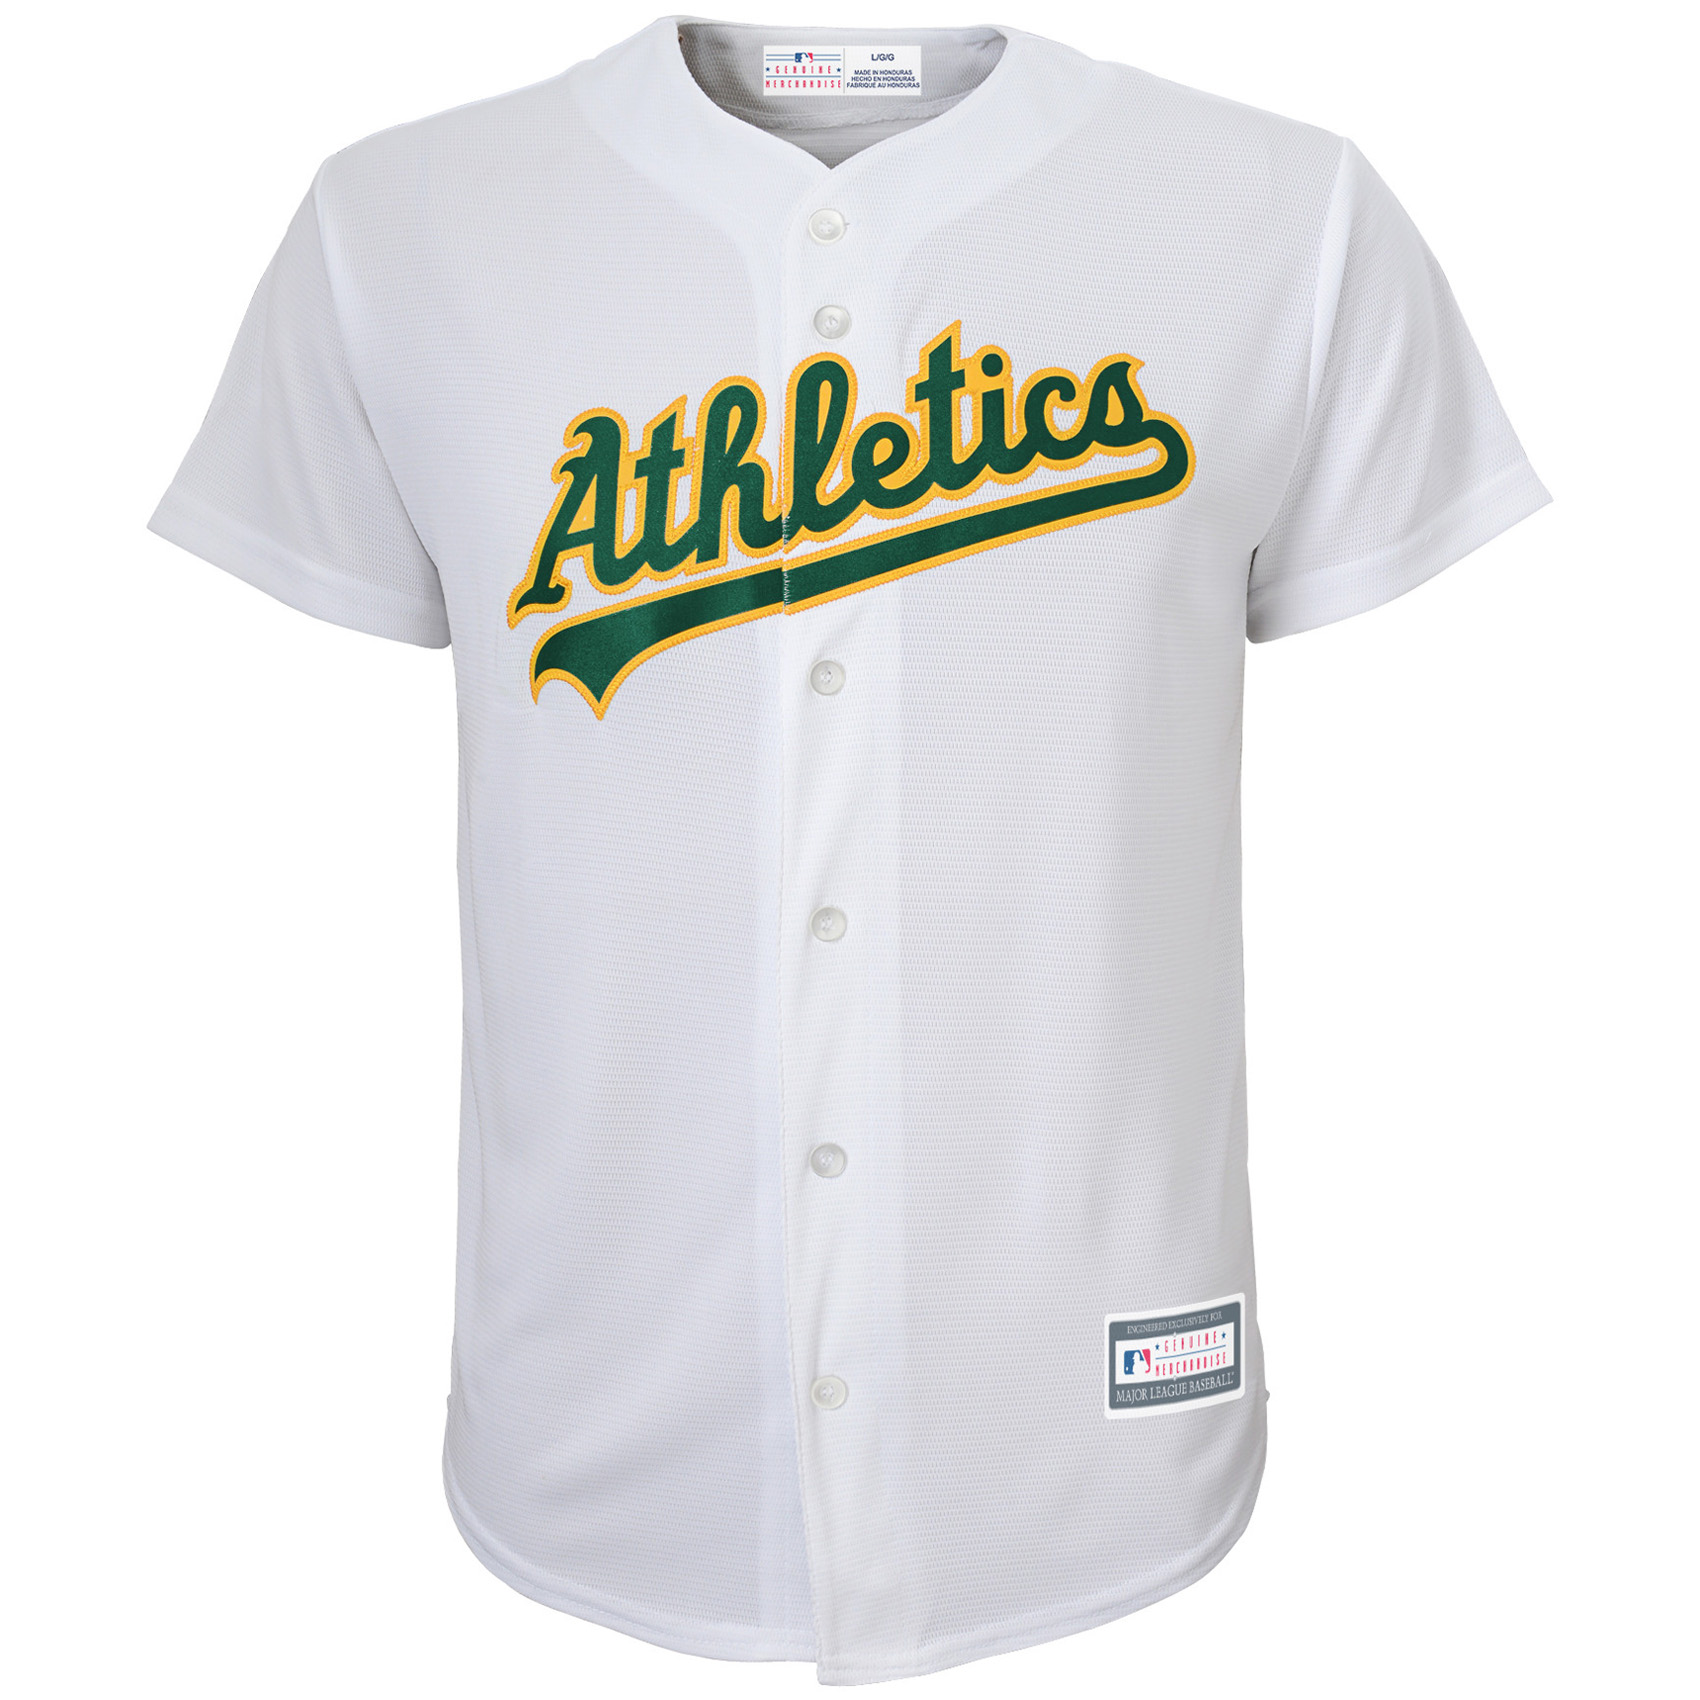 Oakland Athletics Youth Replica Blank Team Jersey - White